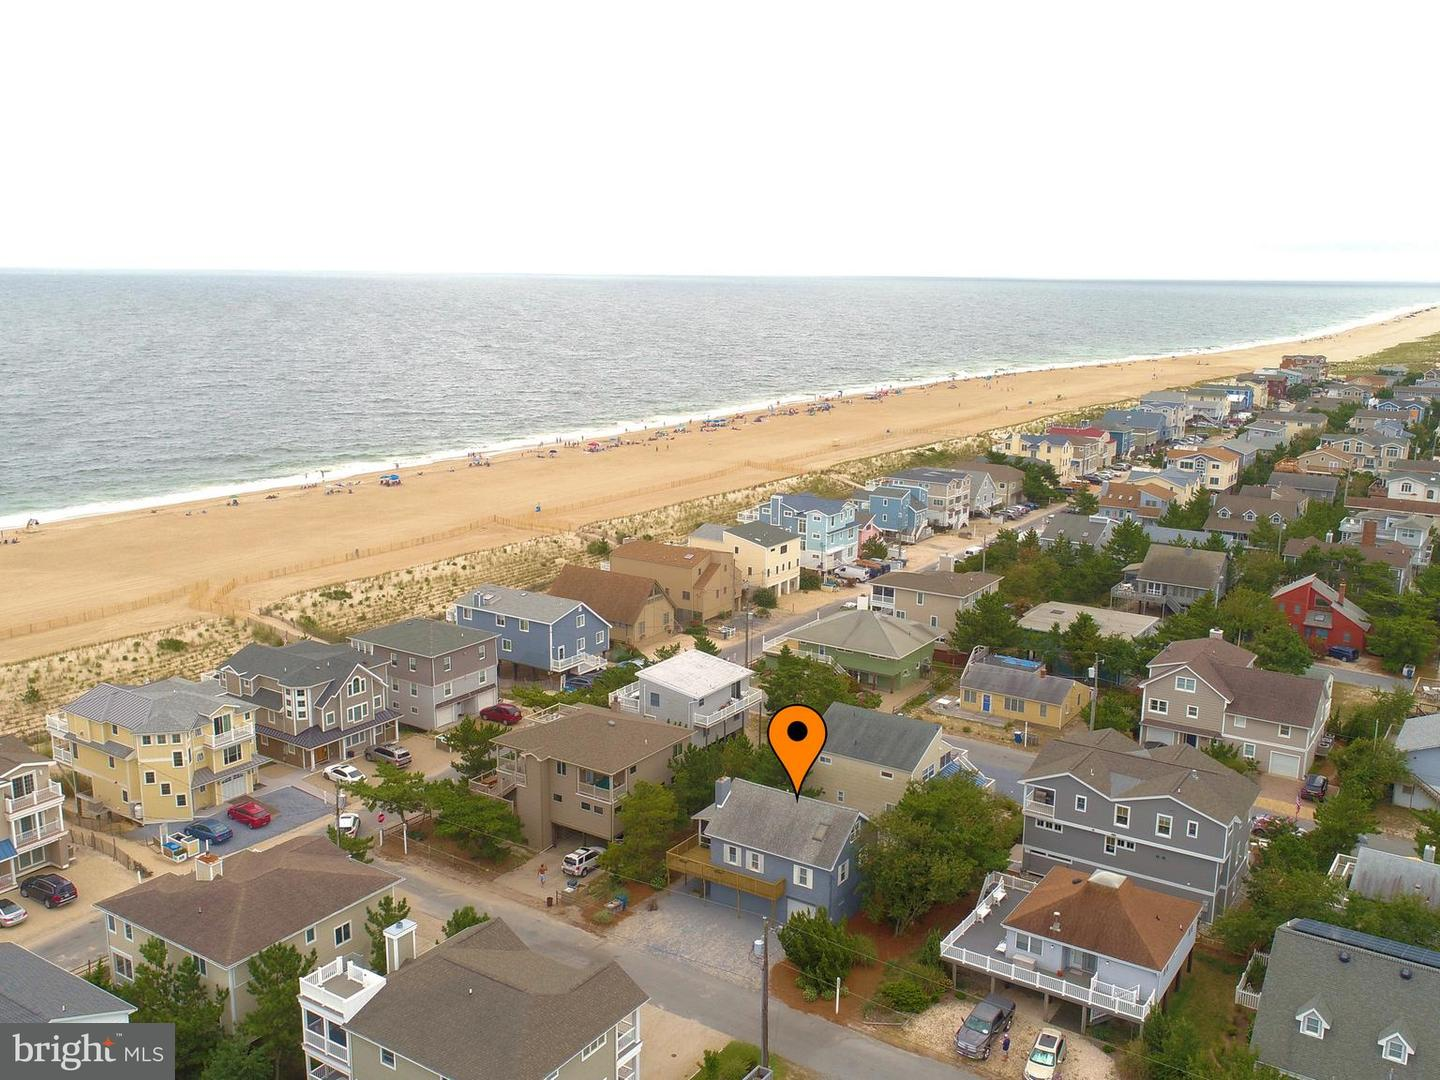 1002299338-300501704014-2018-08-30-10-08-41 4 S 4th St | South Bethany, De Real Estate For Sale | MLS# 1002299338  - Suzanne Macnab